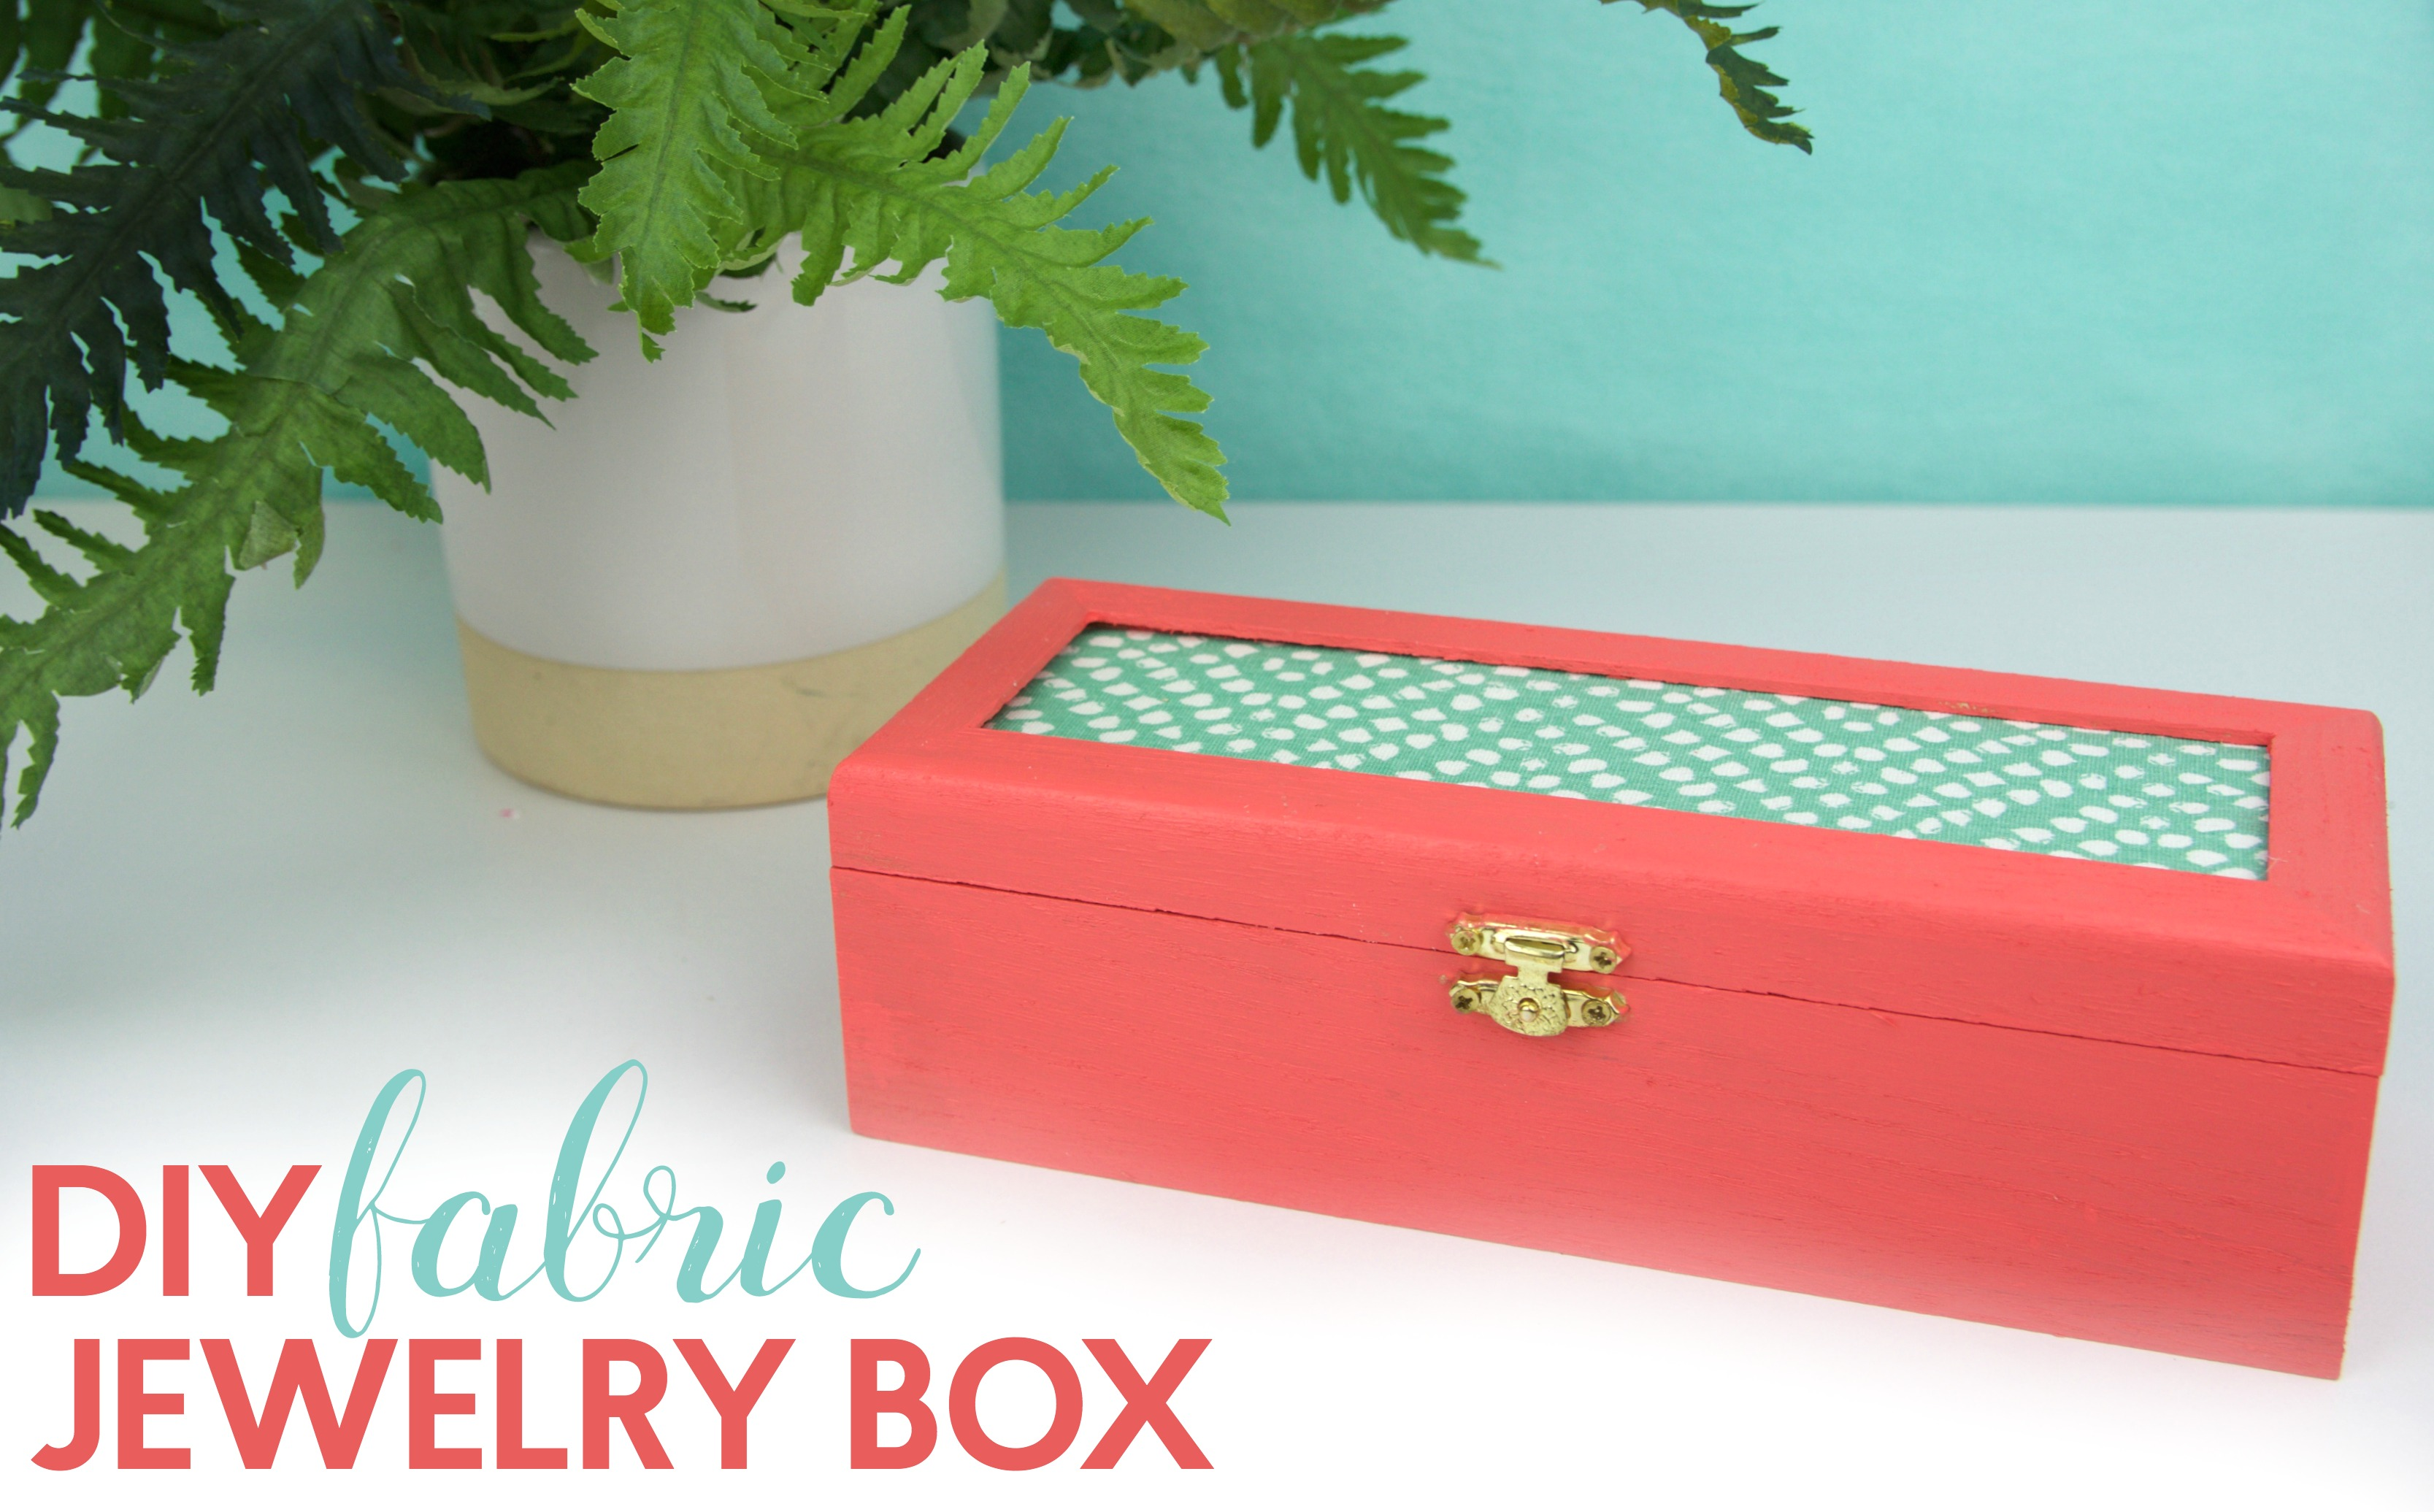 Diy fabric jewelry box a little craft in your day wooden jewelry box americana multi surface paint in shrimp paintbrush fabric scrap dap multi purpose glue solutioingenieria Images